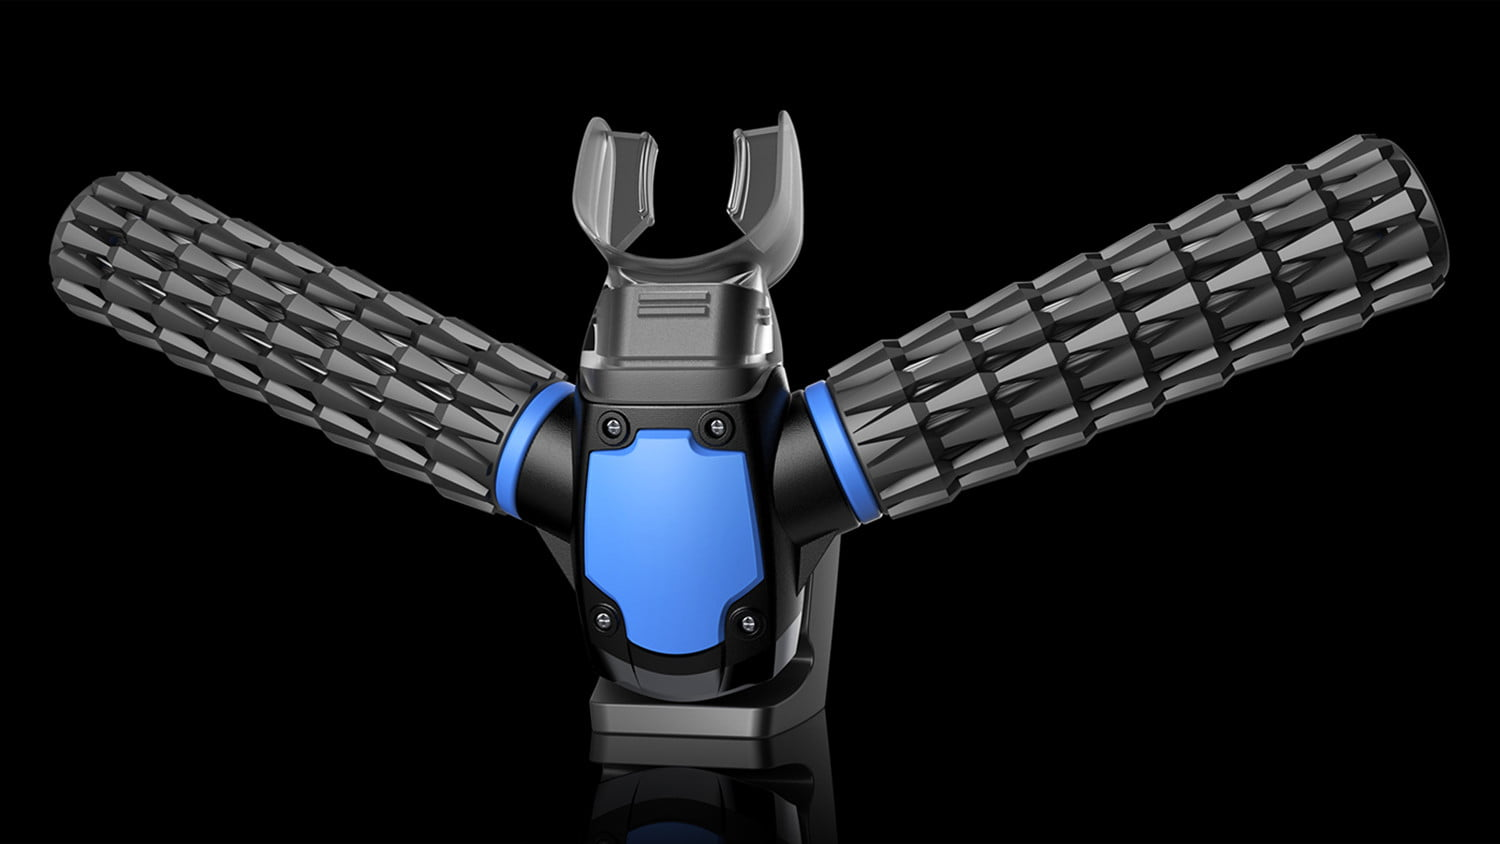 Triton Artificial Gills Got Funded On Indiegogo